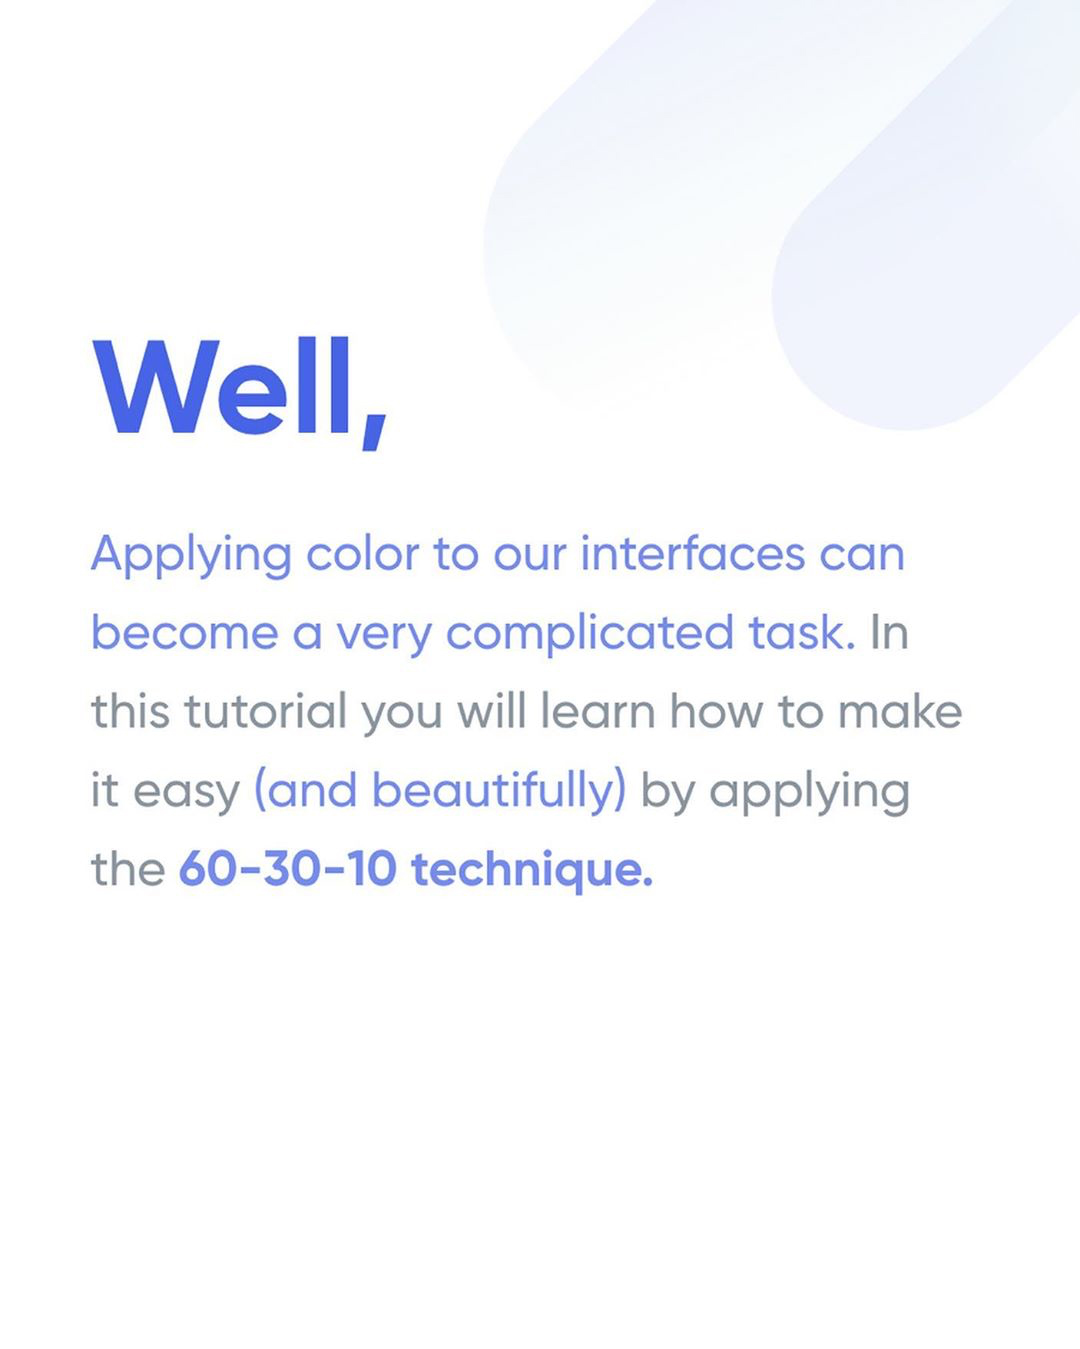 How To Apply Color To Your UI Design - 60-30-10 Technique Intro